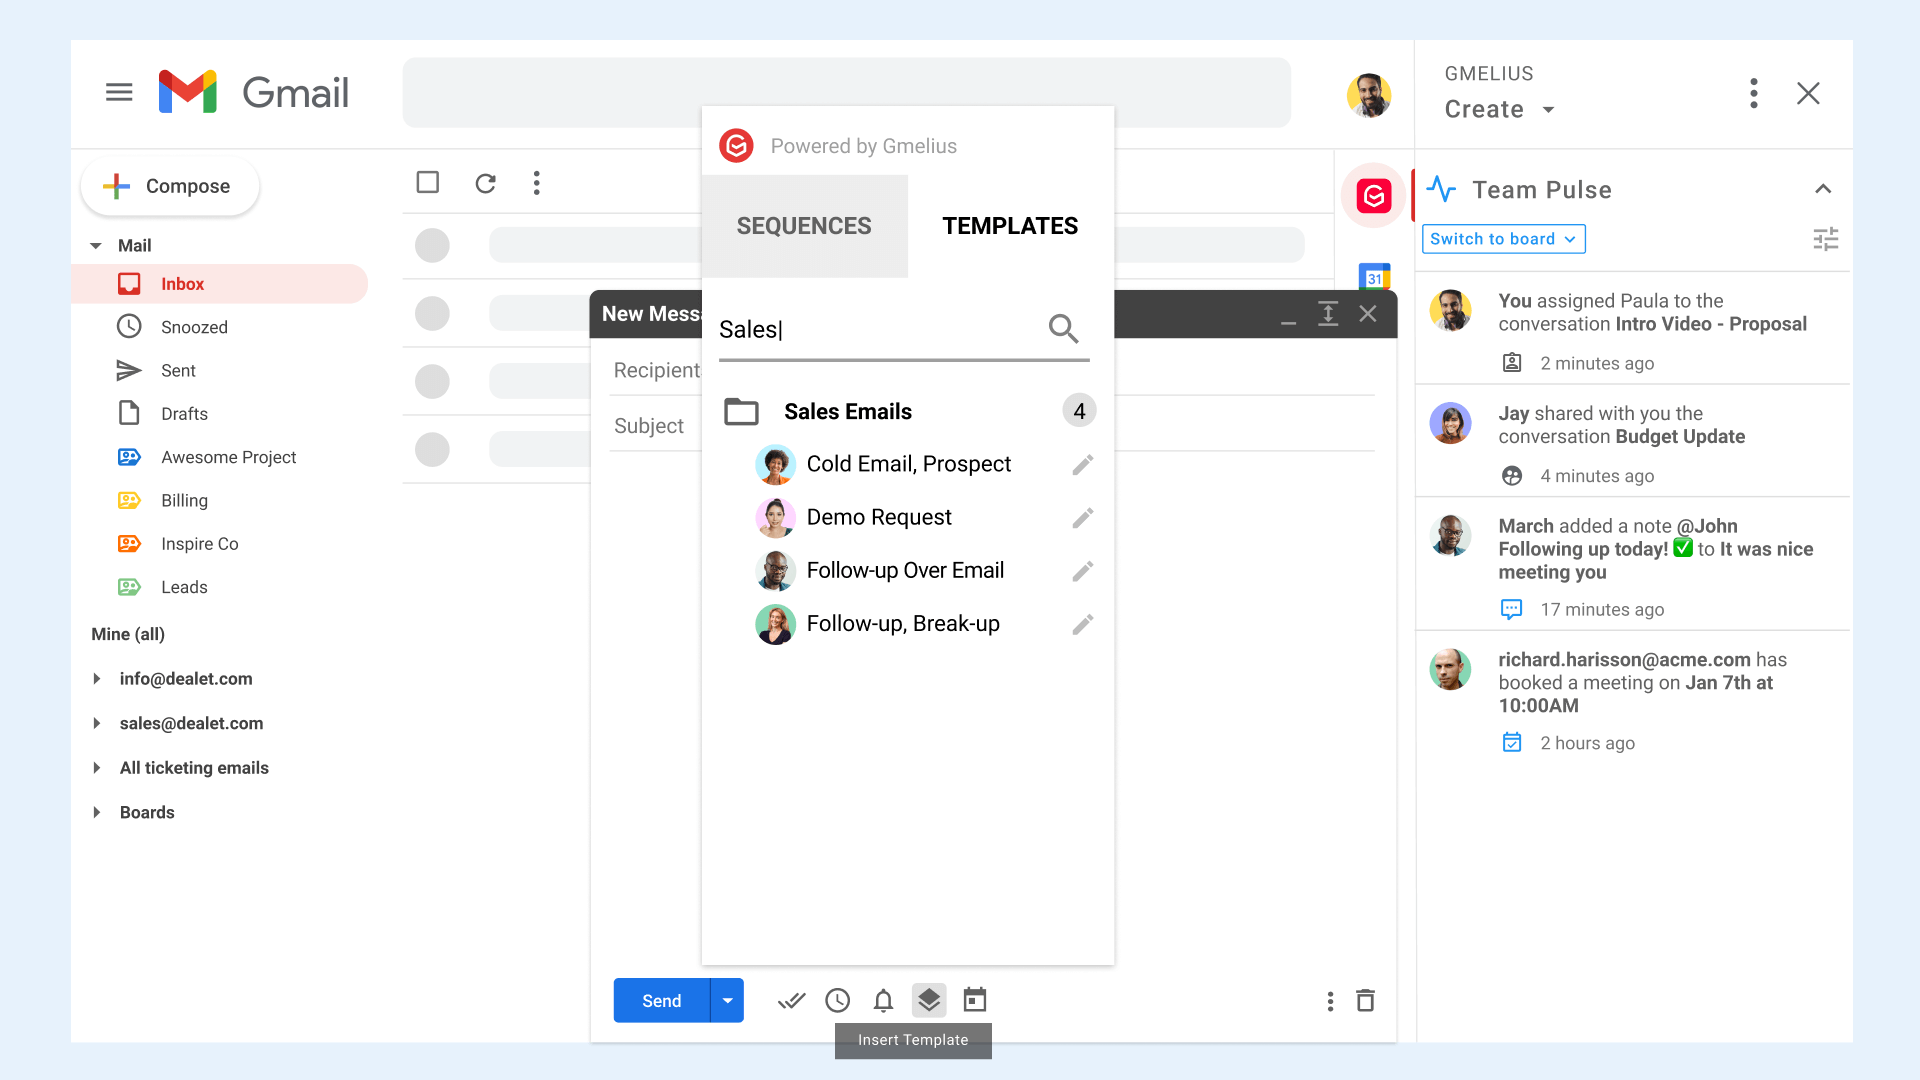 Template Sales in Gmail